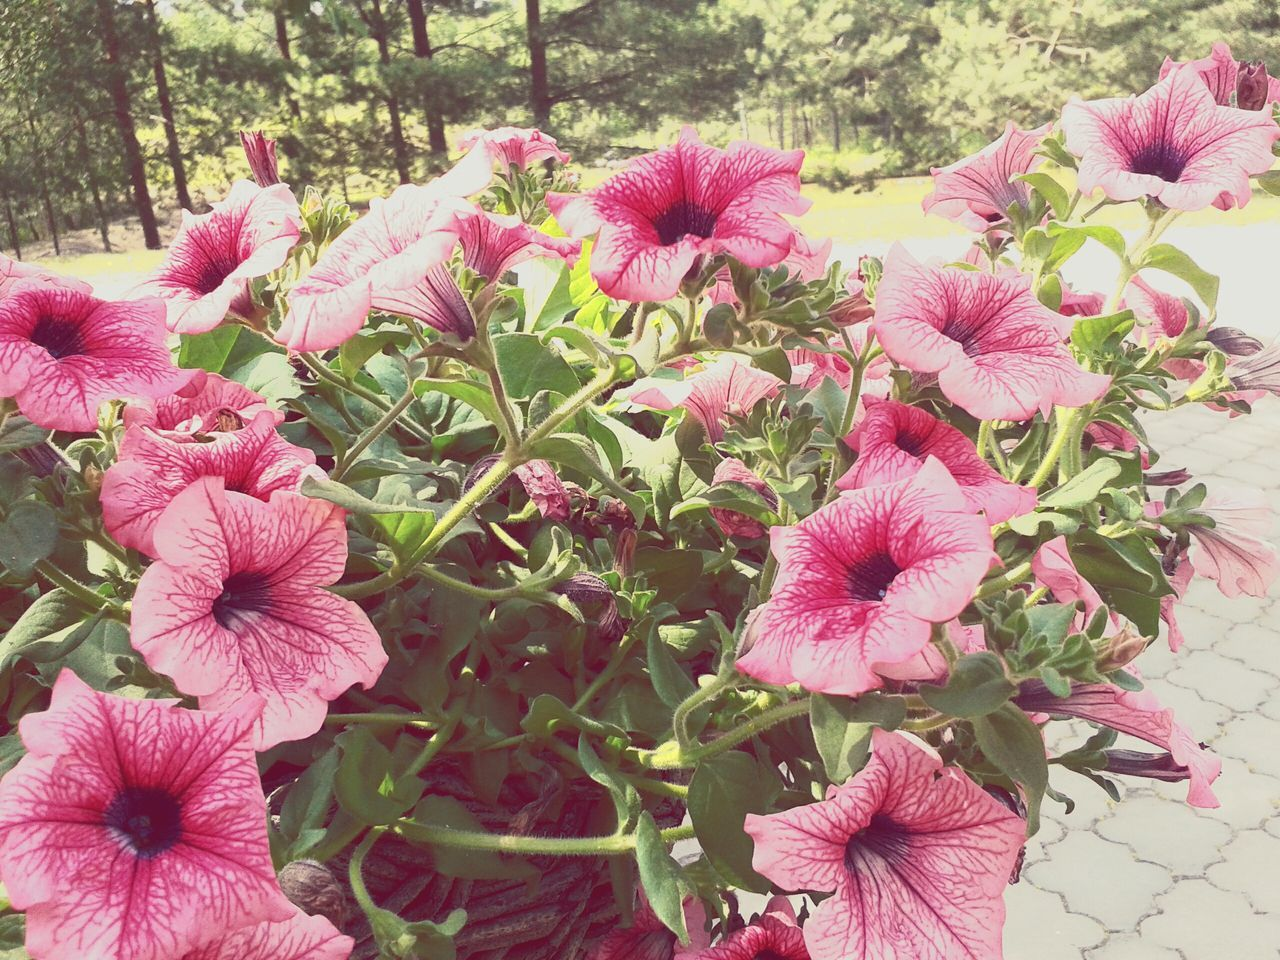 flower, growth, pink color, flower head, fragility, plant, petal, beauty in nature, nature, outdoors, day, blooming, no people, freshness, leaf, springtime, close-up, periwinkle, petunia